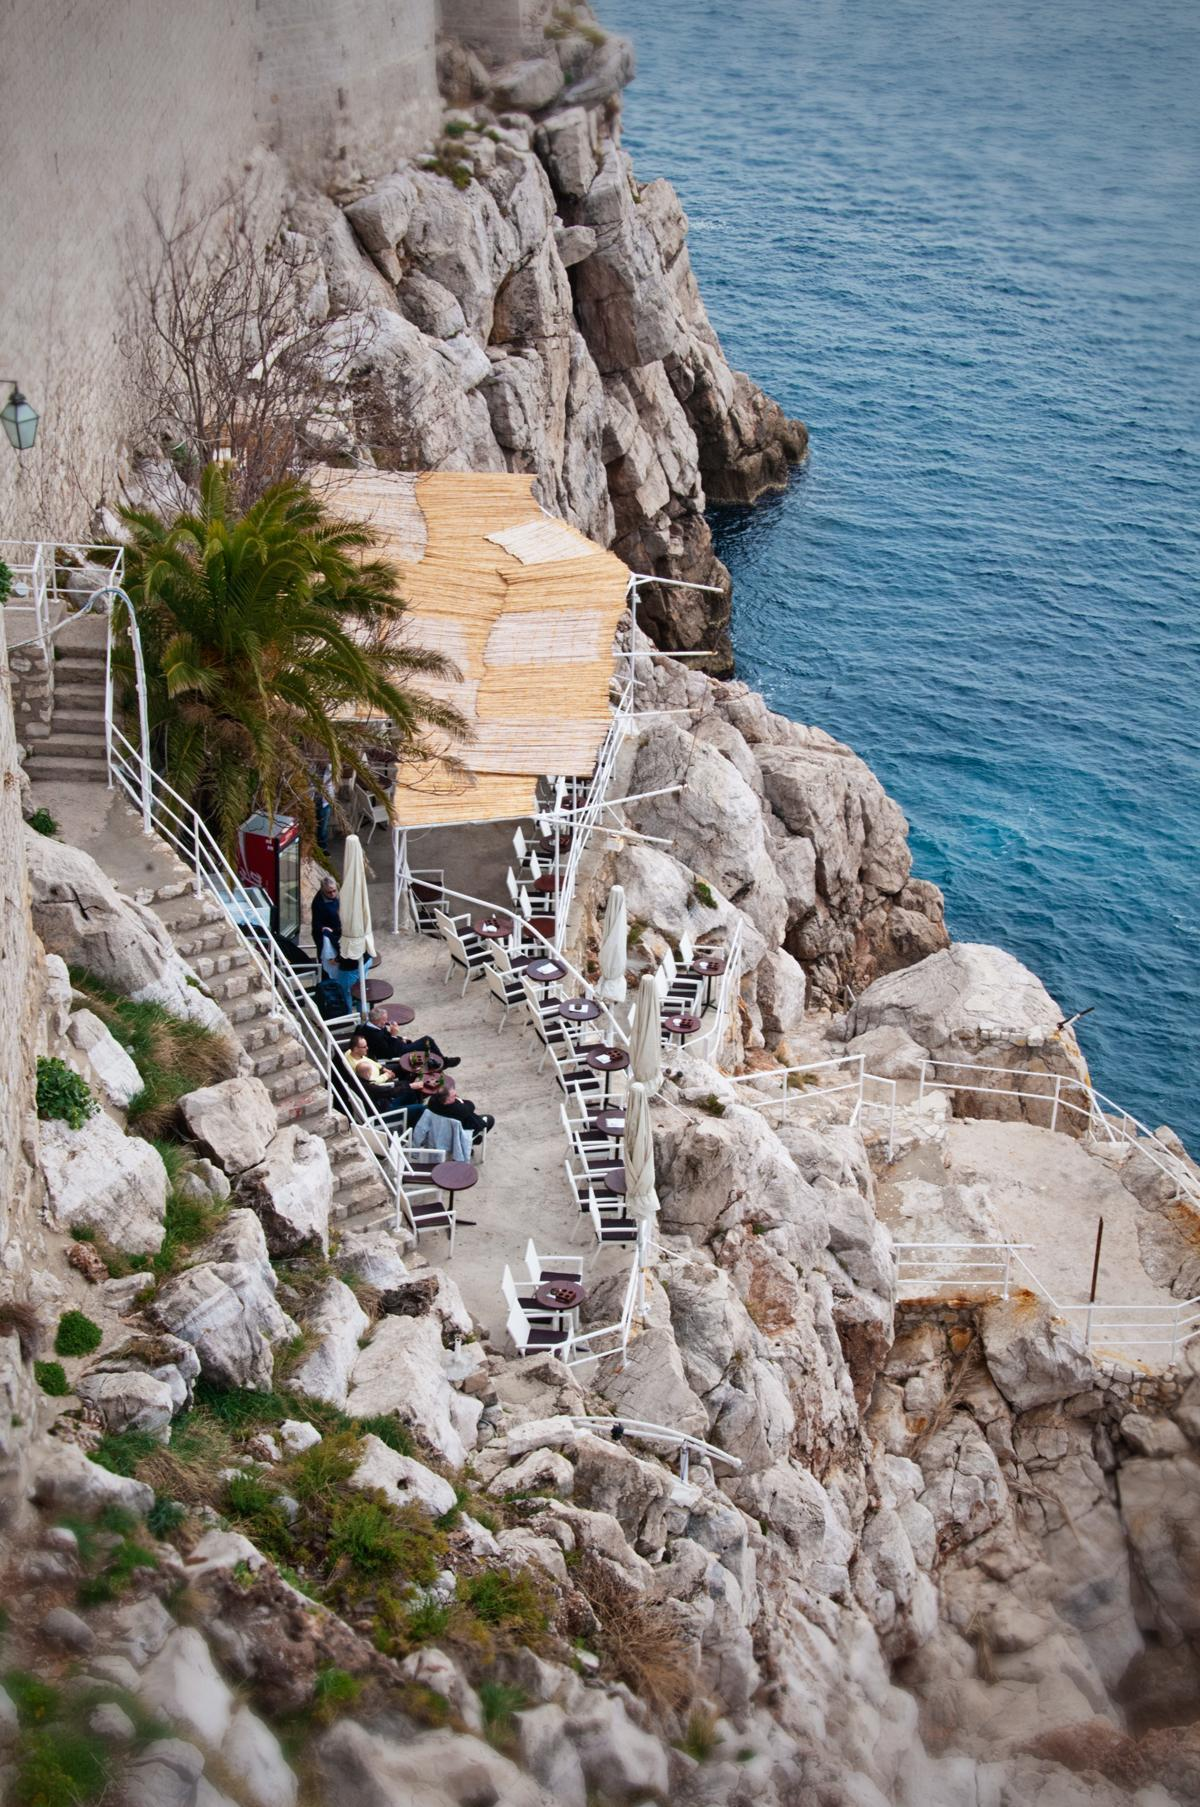 The Buza cafe in Dubrovnik, Croatia offers drinks with an unforgettable view